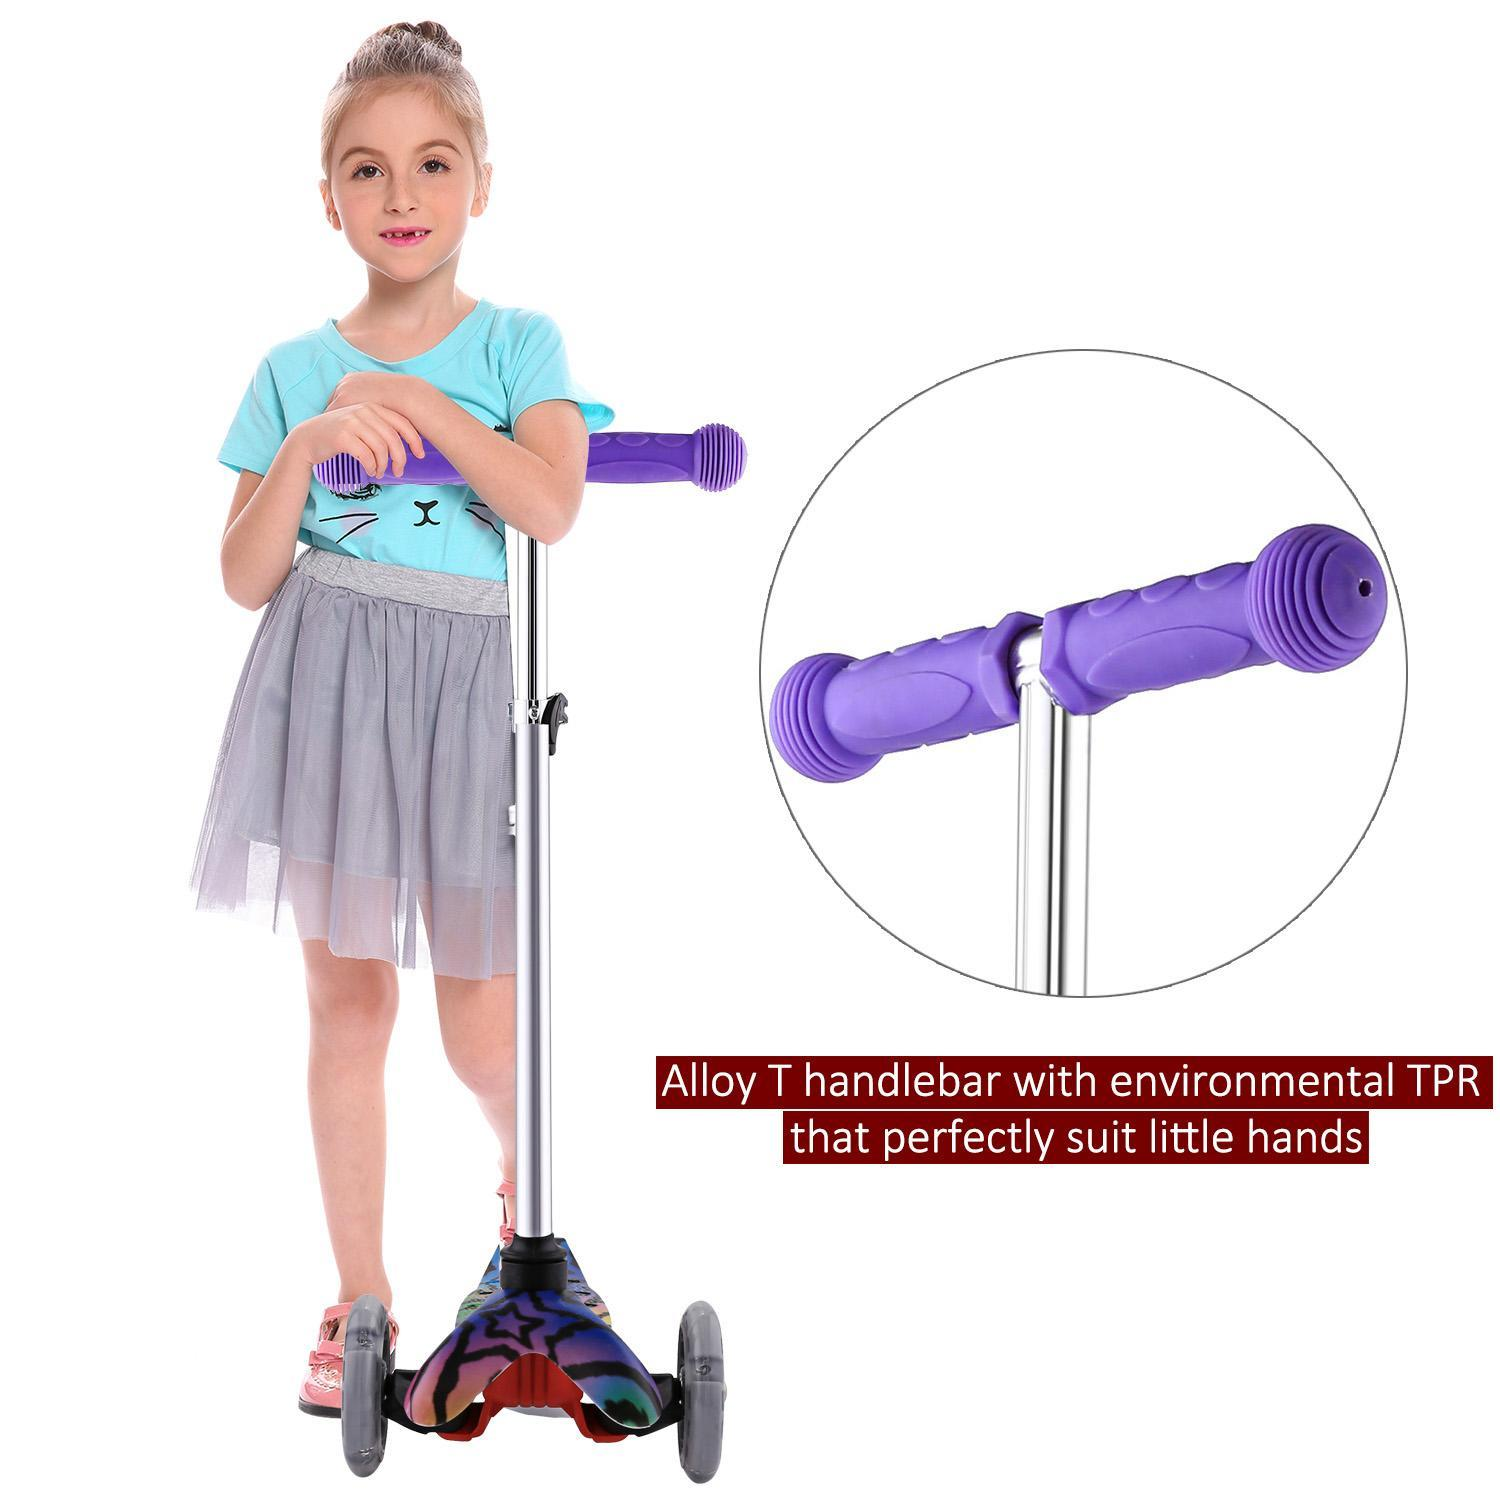 Kick Scooter for Kids 3 Wheel Scooter, 4 Adjustable Height, Lean to Steer with PU LED Light Up Wheels for Children from 3 to 7 Years Old ROJE